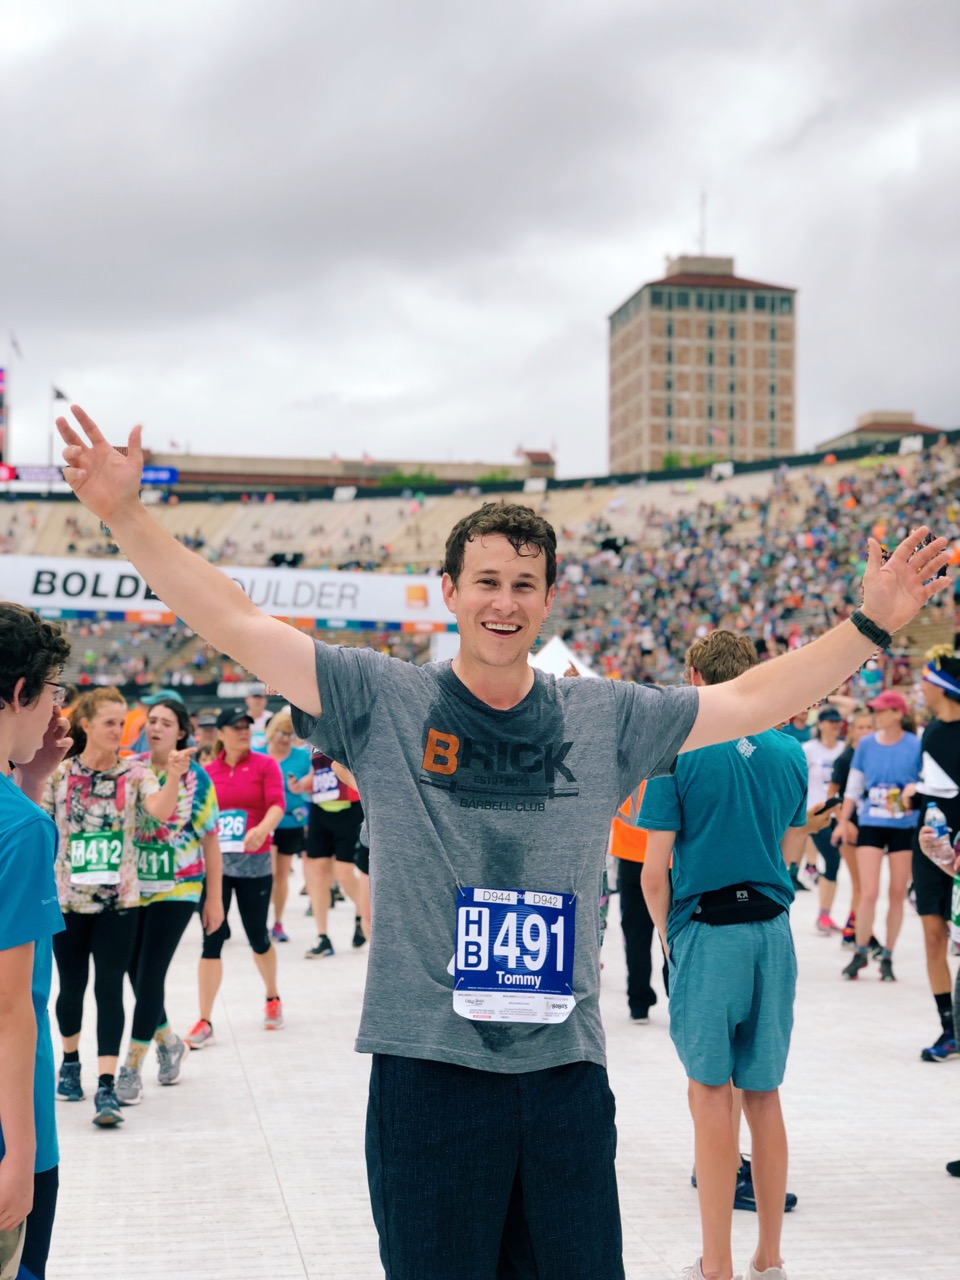 finisher at bolder boulder 2019